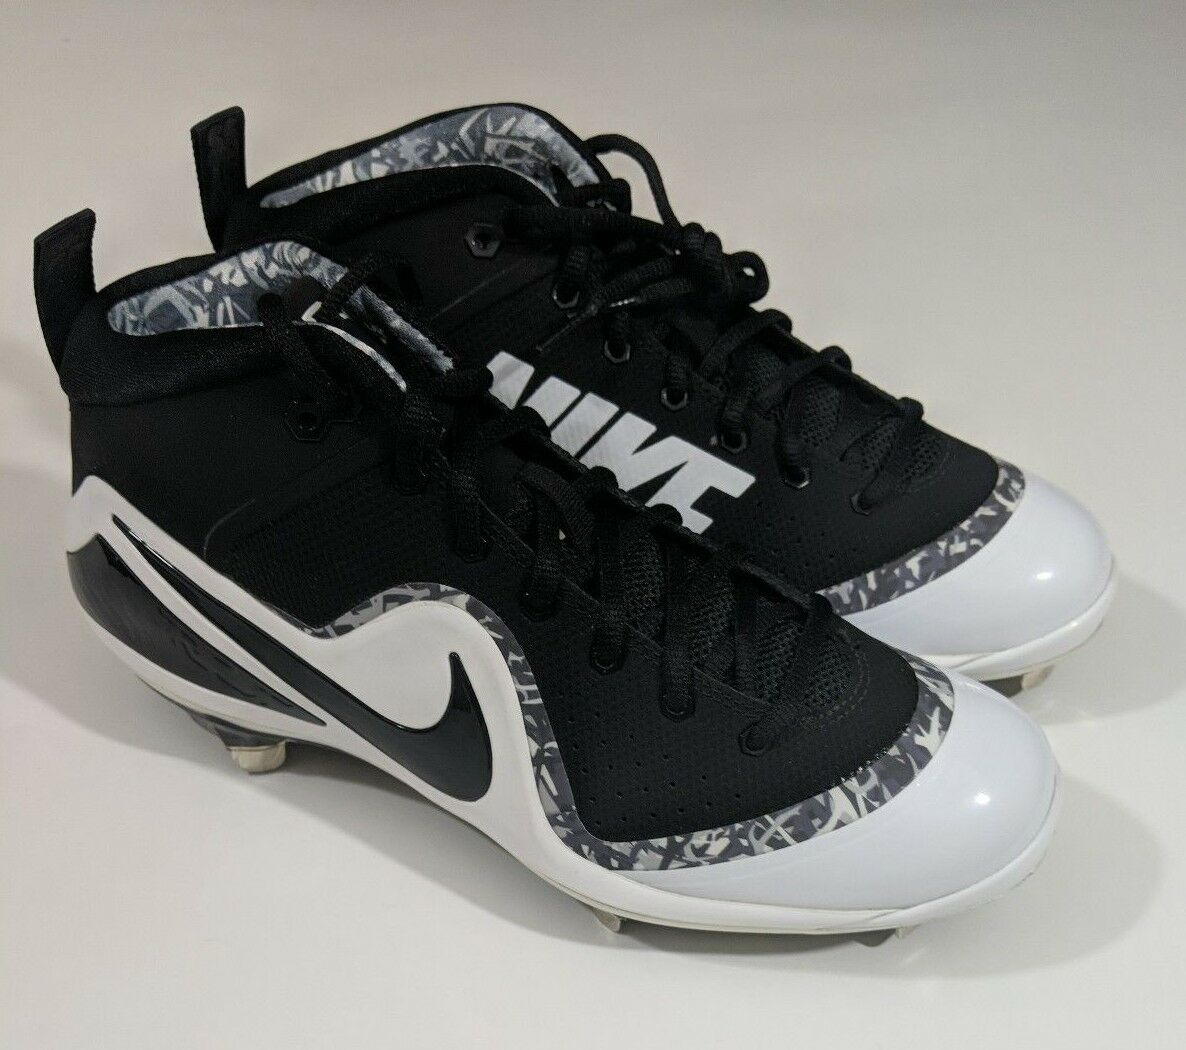 bec7a790db08c Nike Force Zoom Trout 4 Men s Size 12 Baseball Cleats Cleats Cleats Black  917837 001 130